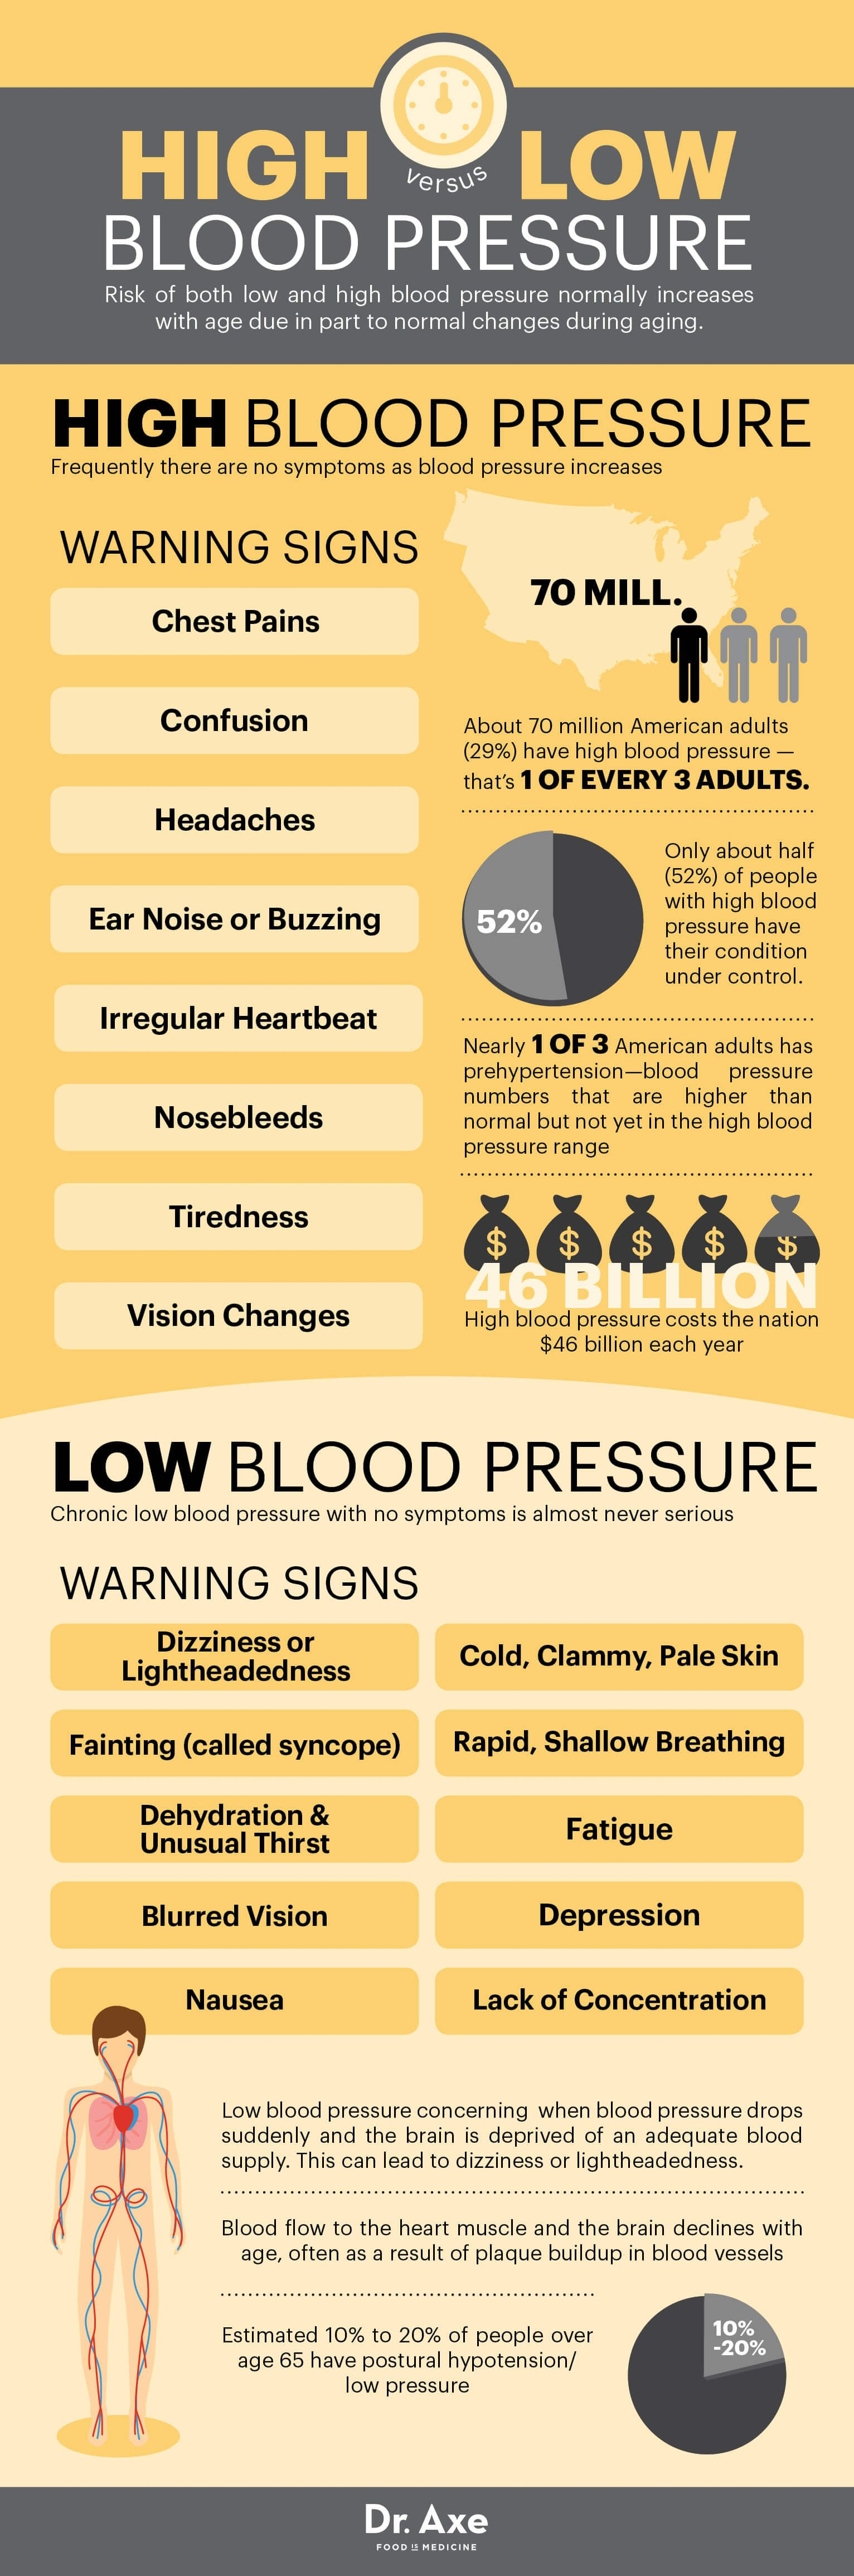 Low diastolic pressure. Causes and treatment 82